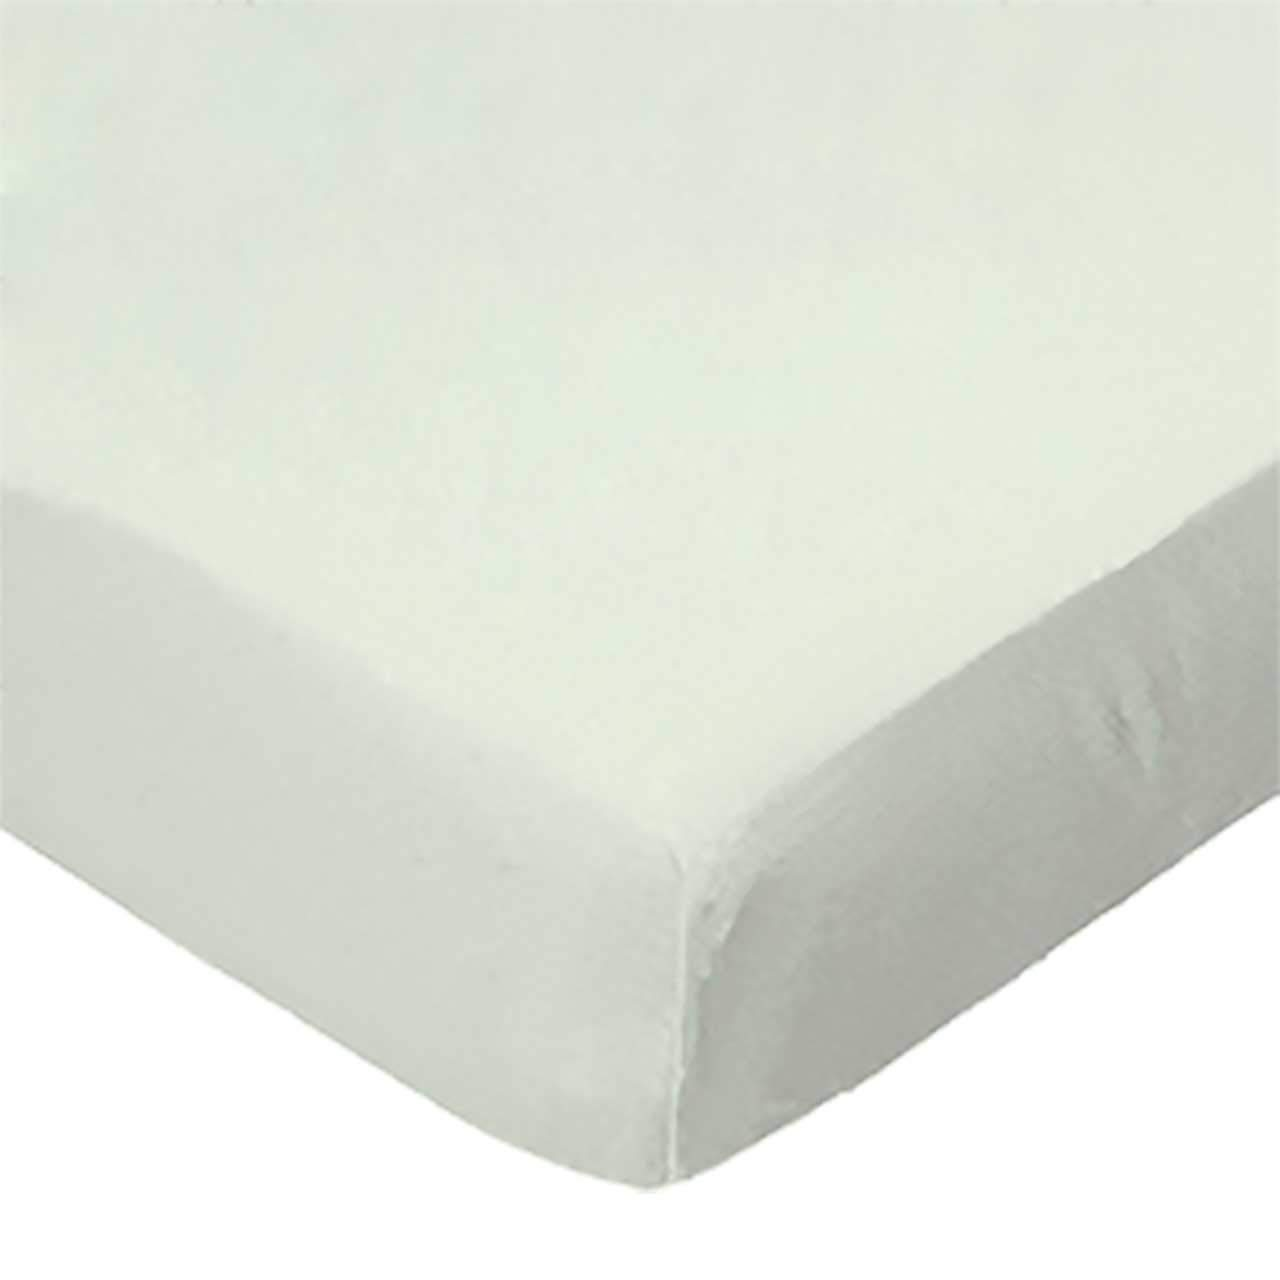 Amazon Com Sheetworld 100 Cotton Jersey Extra Deep Fitted Portable Mini Crib Sheet 24 X 38 X 5 5 Soft Mint Made In Usa Crib Fitted Sheets Baby